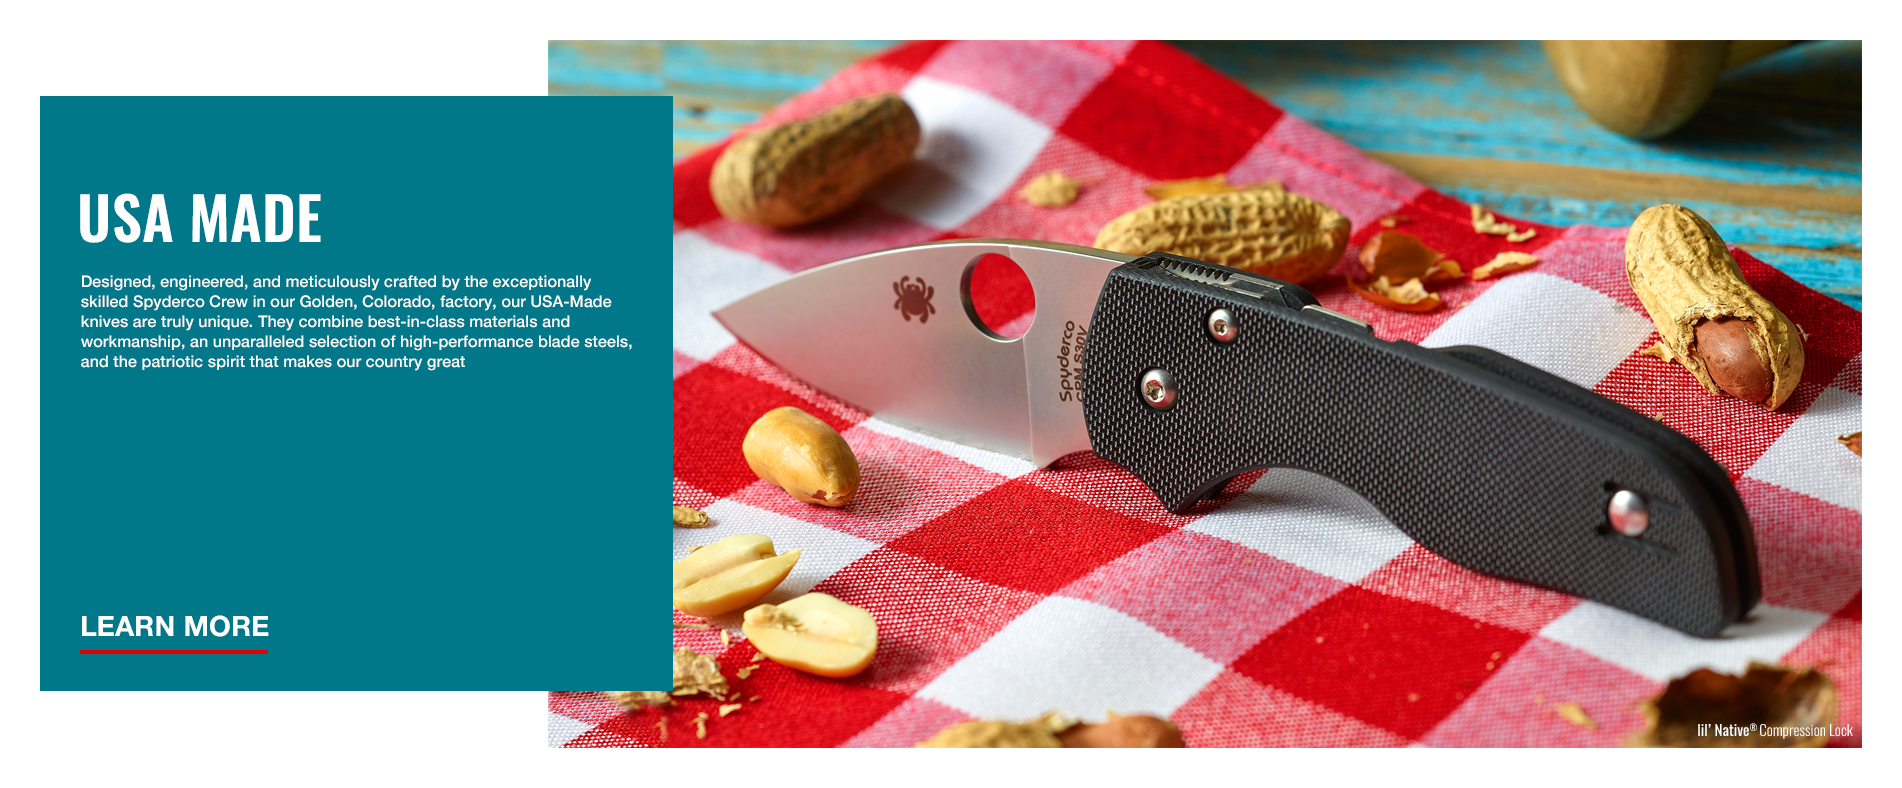 Spyderco, Inc  – First we made things sharp, then we made